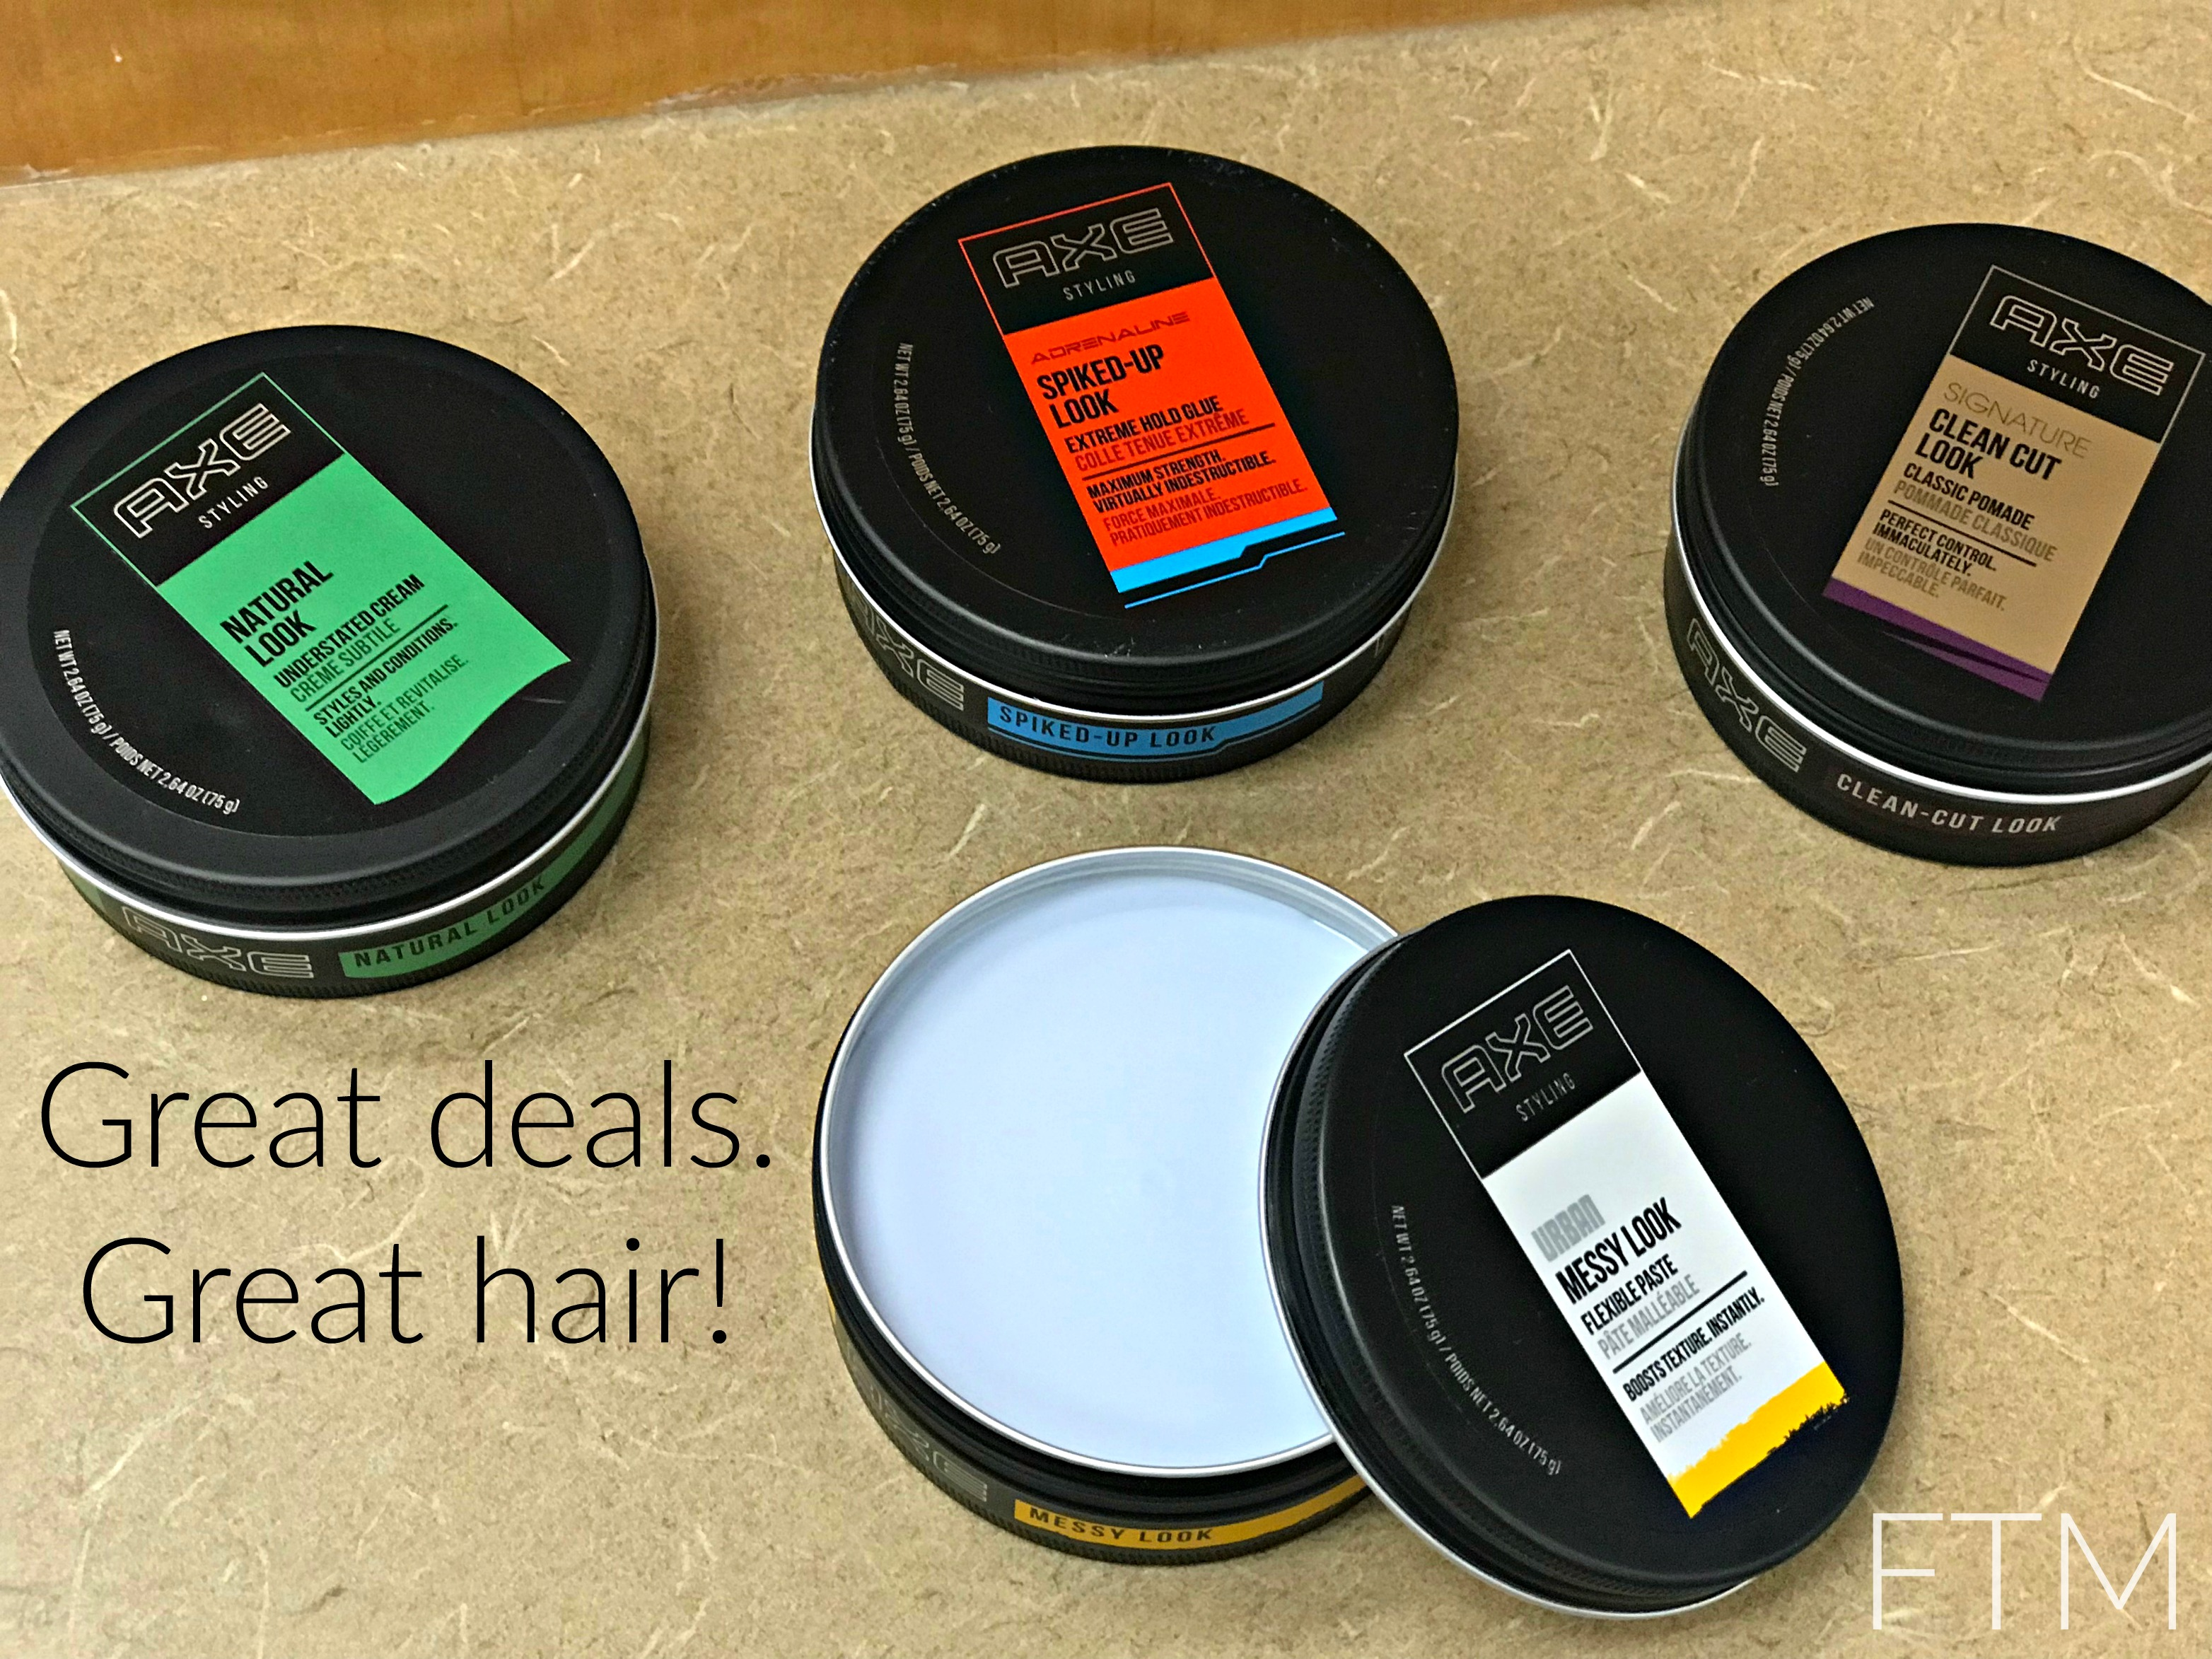 Axe Styling at CVS: Haircare for Him